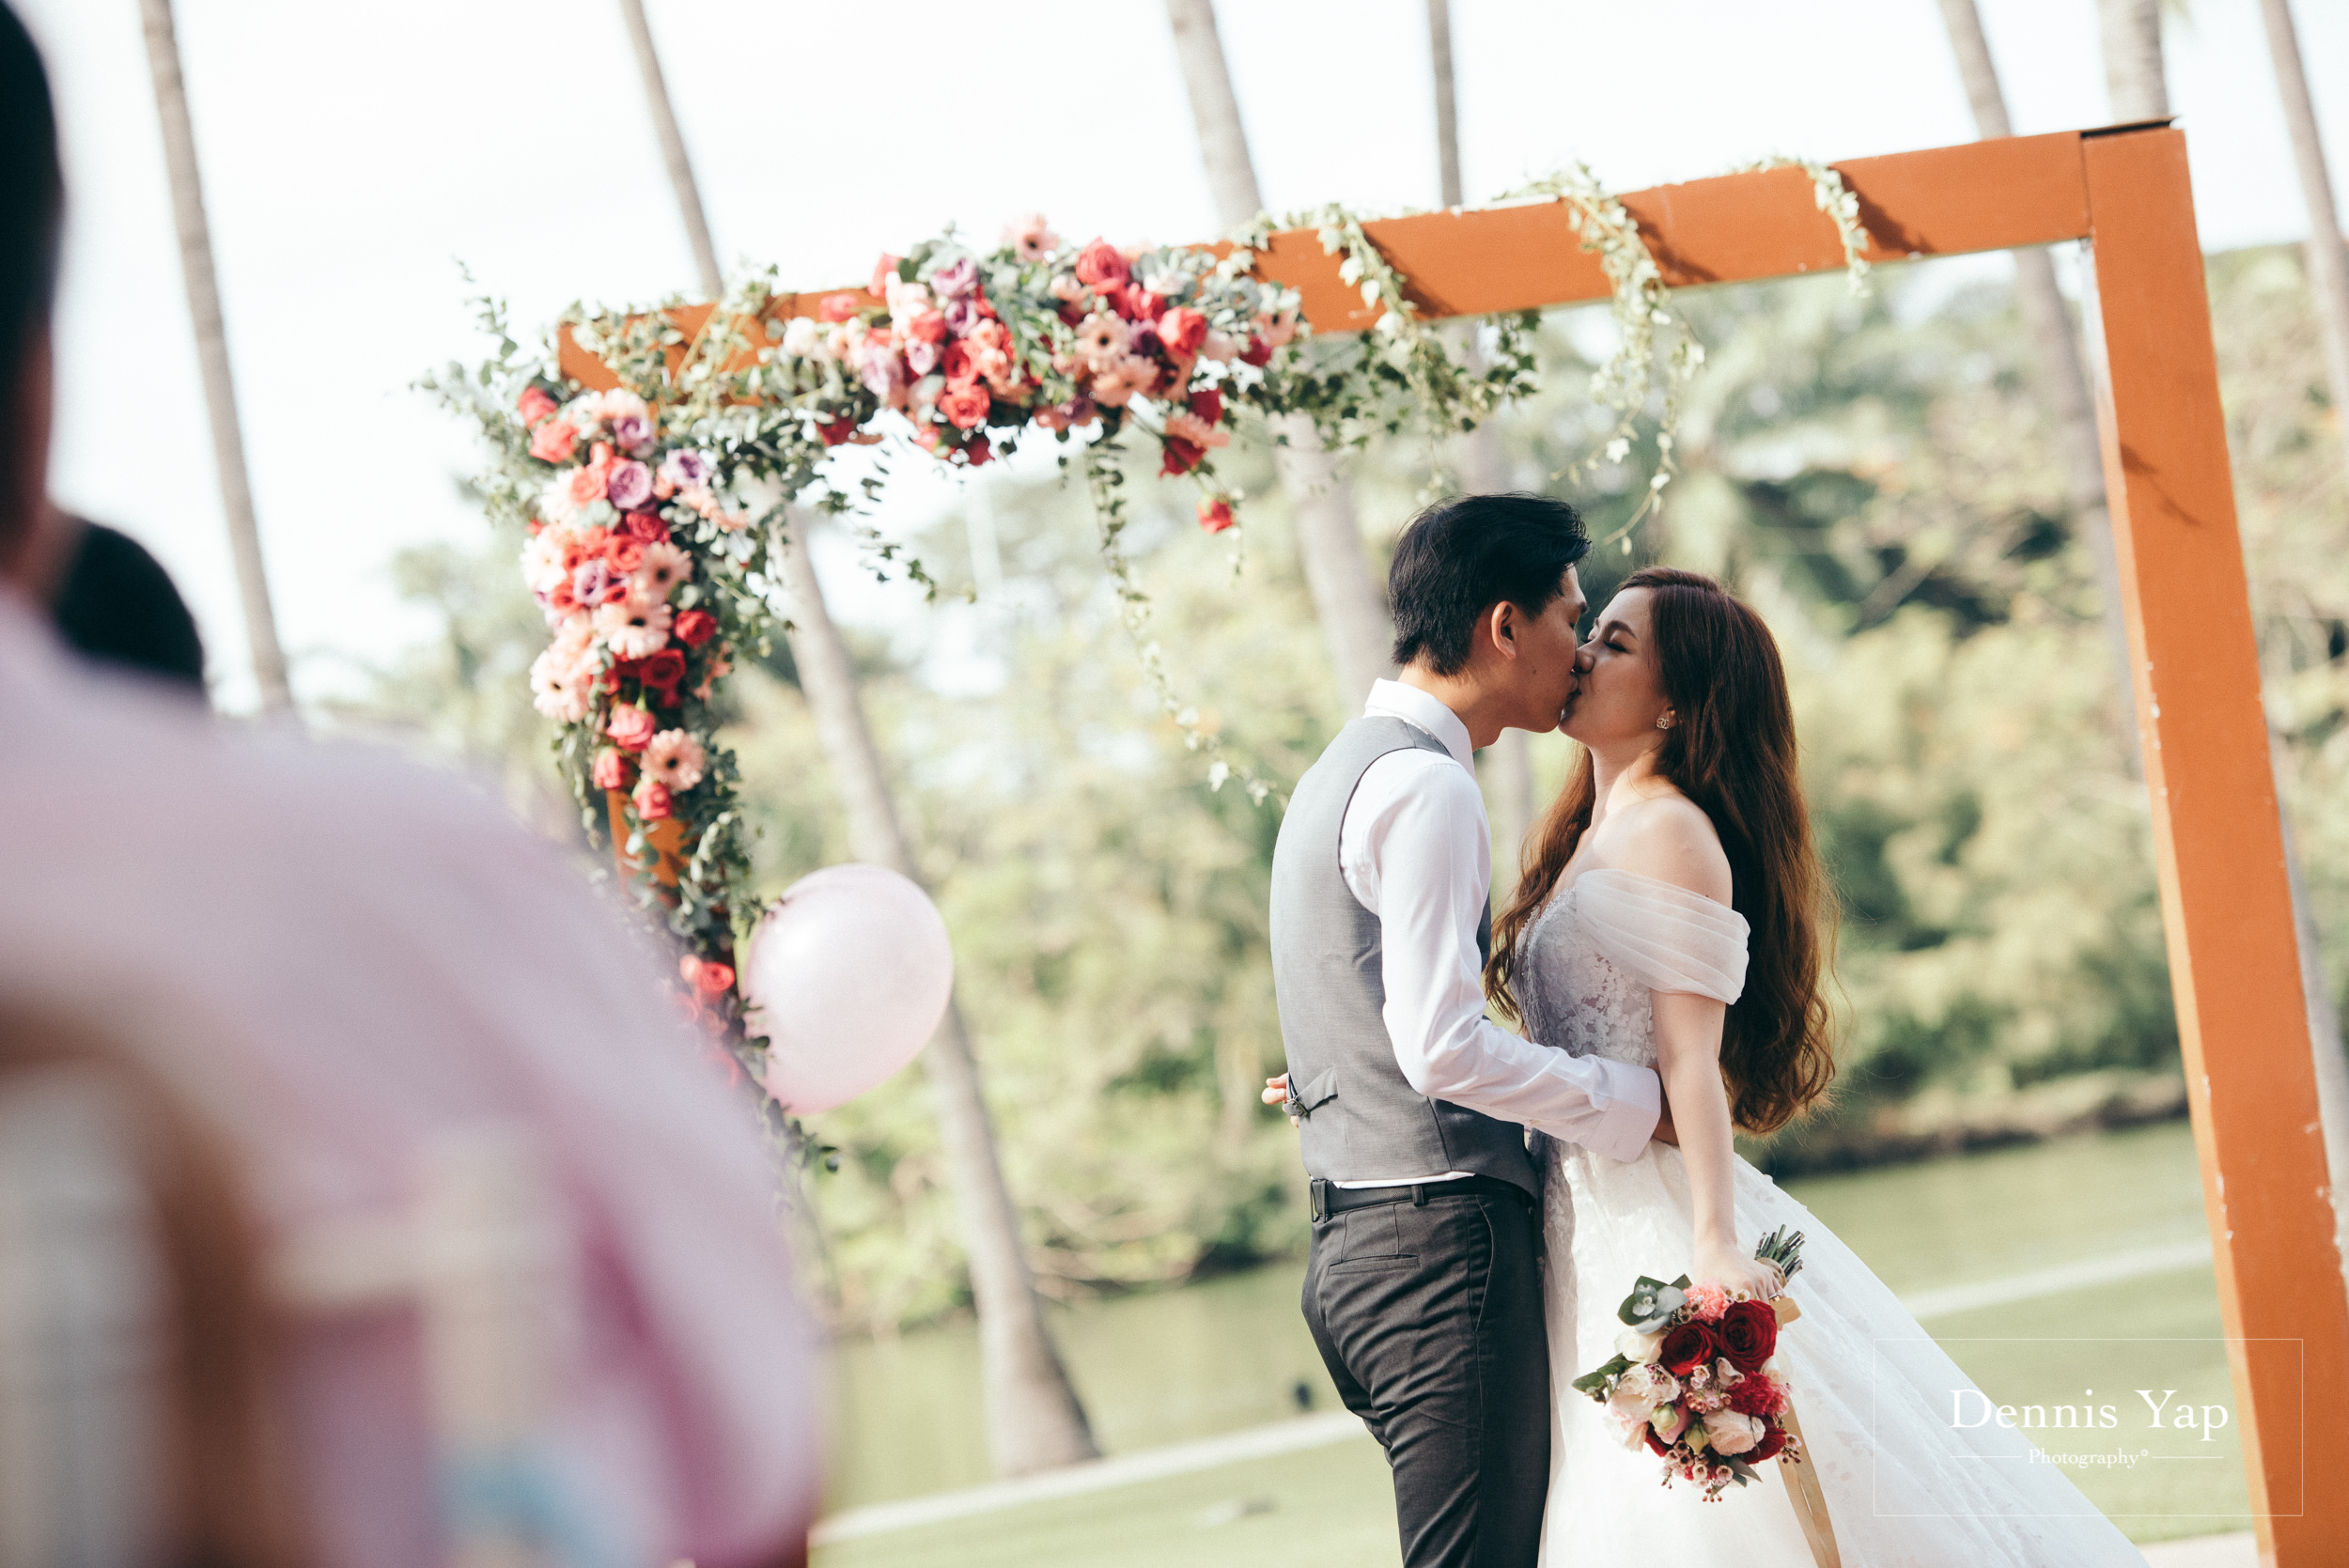 CT Annie garden wedding saujana subang jaya dennis yap photography IT malaysia top photographer-16.jpg